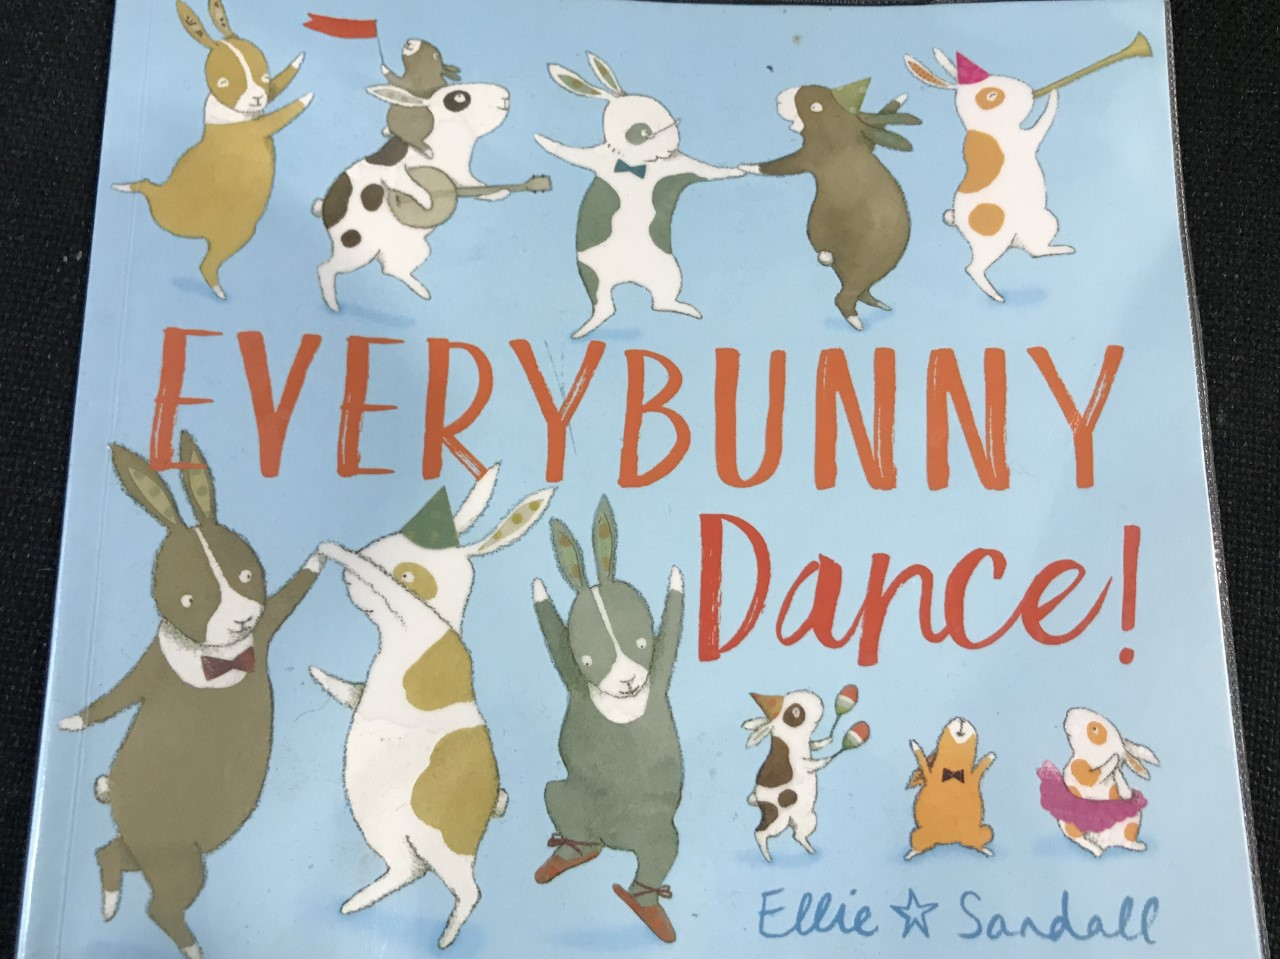 Join us online for storytelling, singing and sensory fun aimed at under 4's based on the story Everybunny Dance! Join our Facebook event to access the live video.